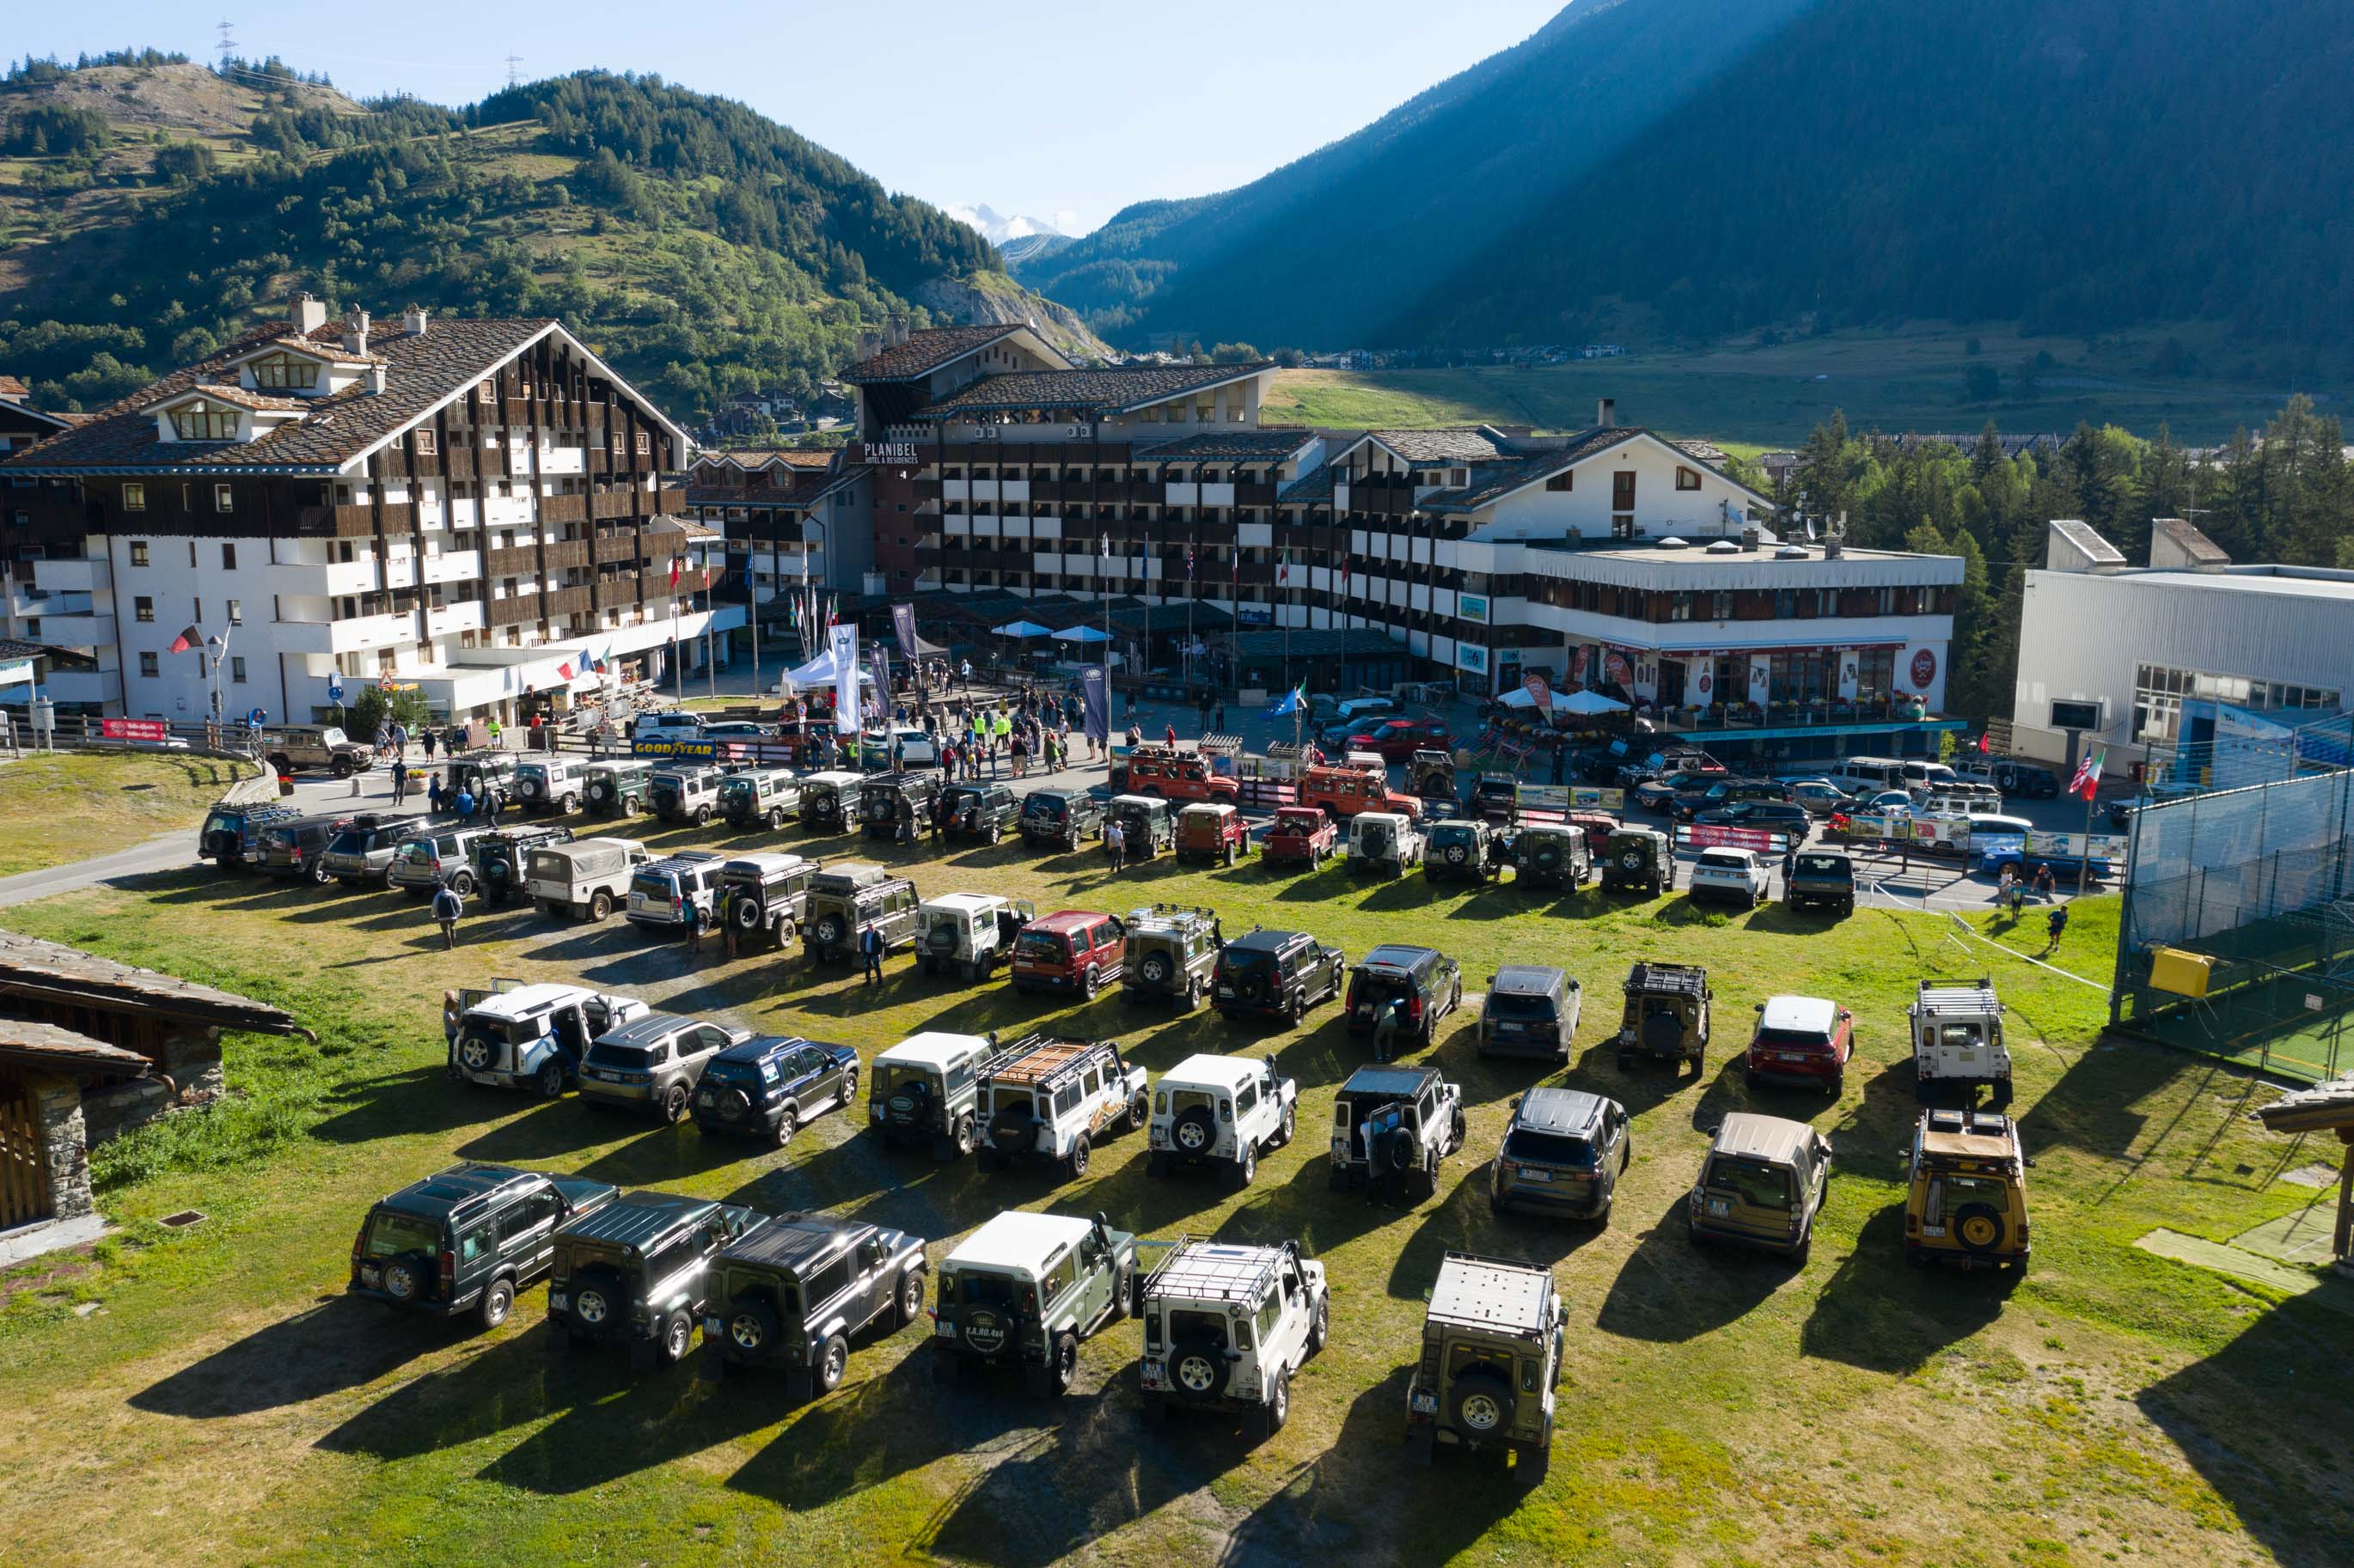 Land Rover Day Valle d'Aosta- Land Rover Experience Italia - Registro Italiano Land Rover